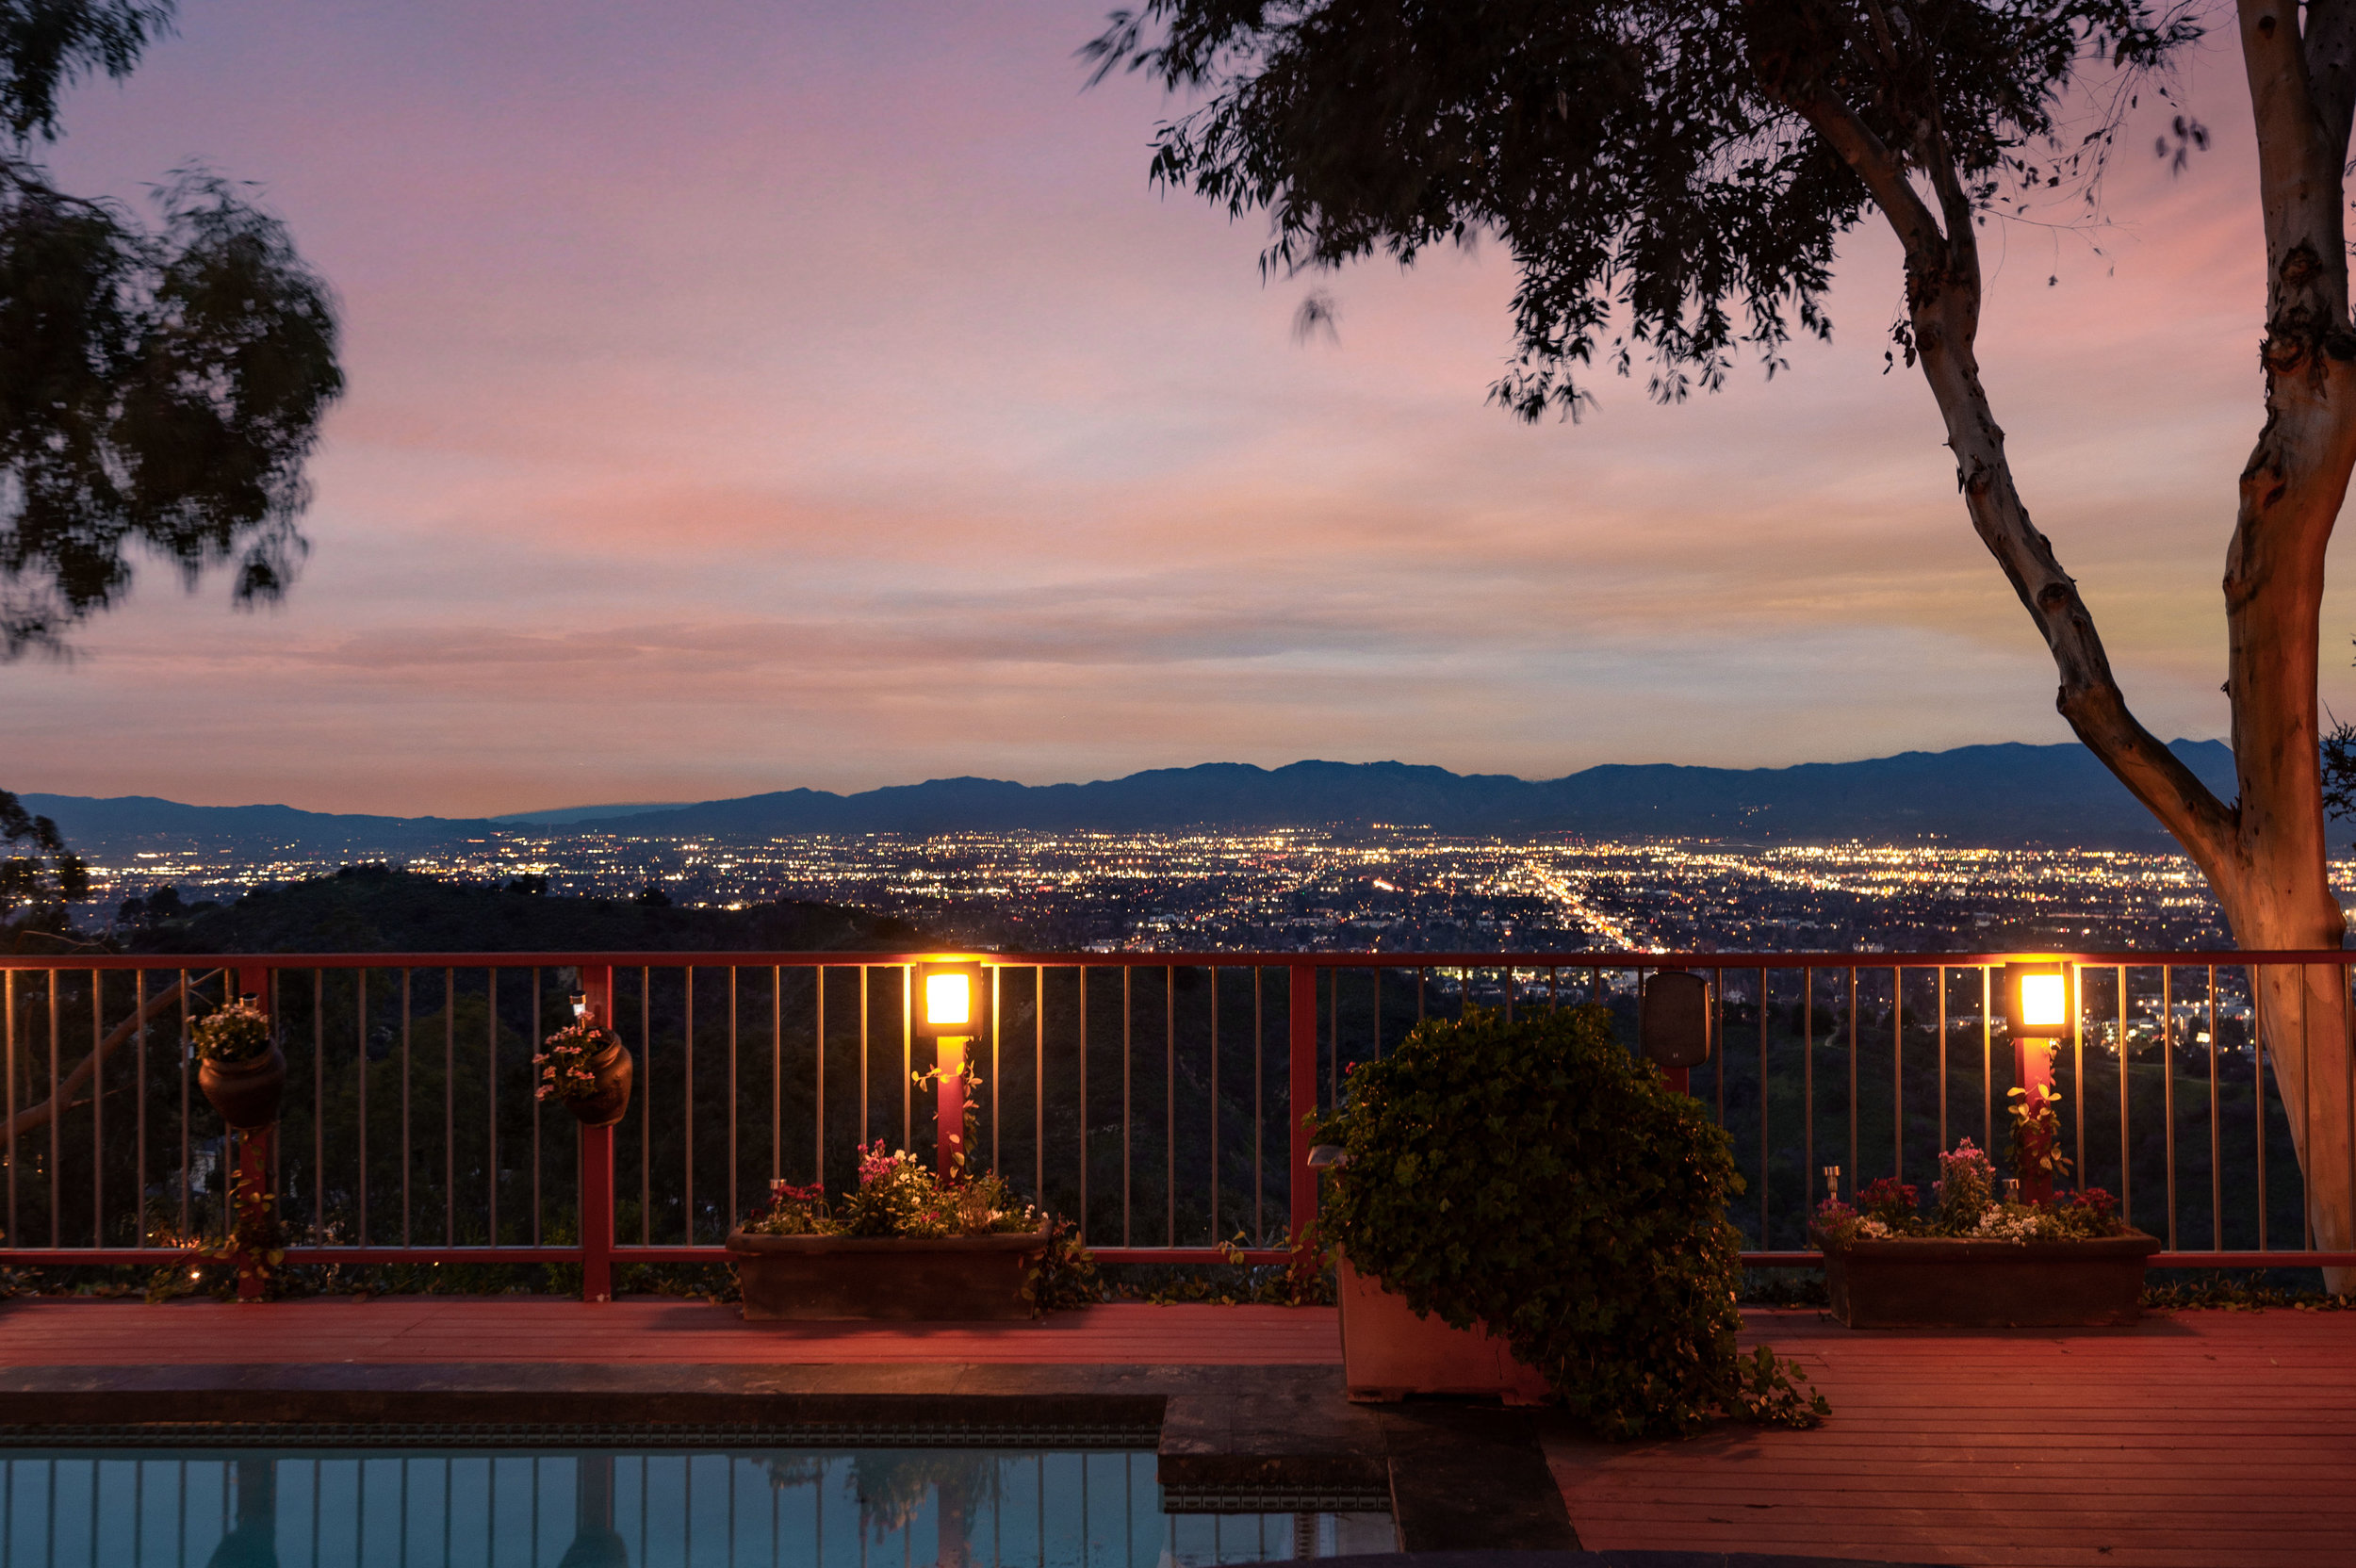 001 View 12027 Talus Place Beverly Hills 90210 For Sale Lease The Malibu Life Team Luxury Real Estate.jpg